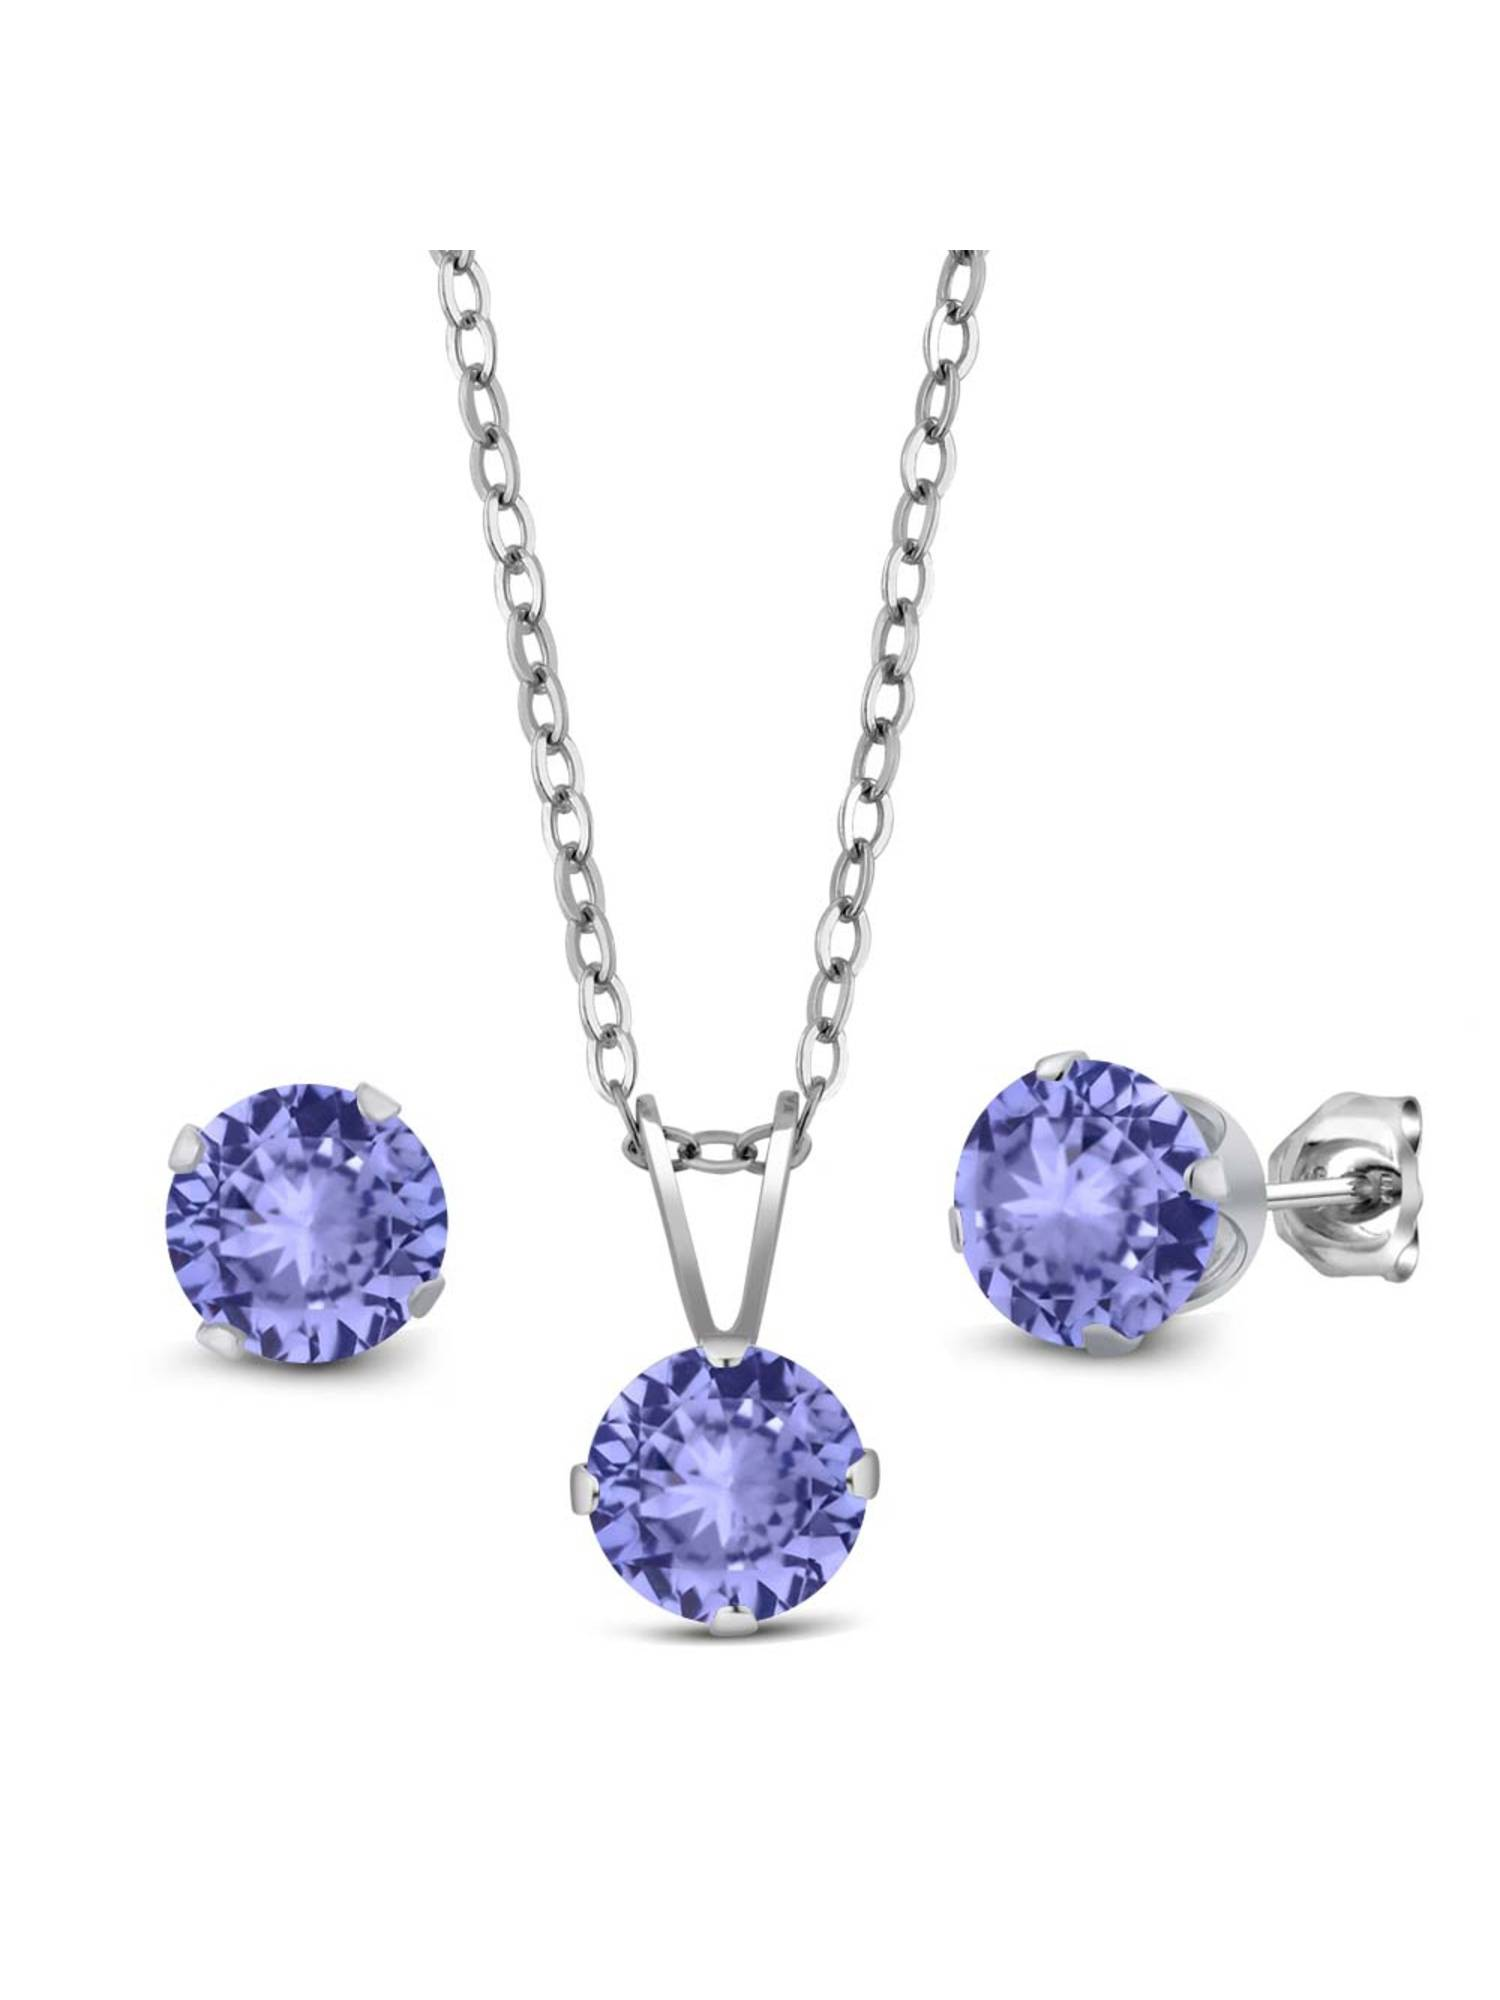 2.40 Ct Blue Tanzanite AAA 925 Sterling Silver Pendant Earrings Set With Chain by